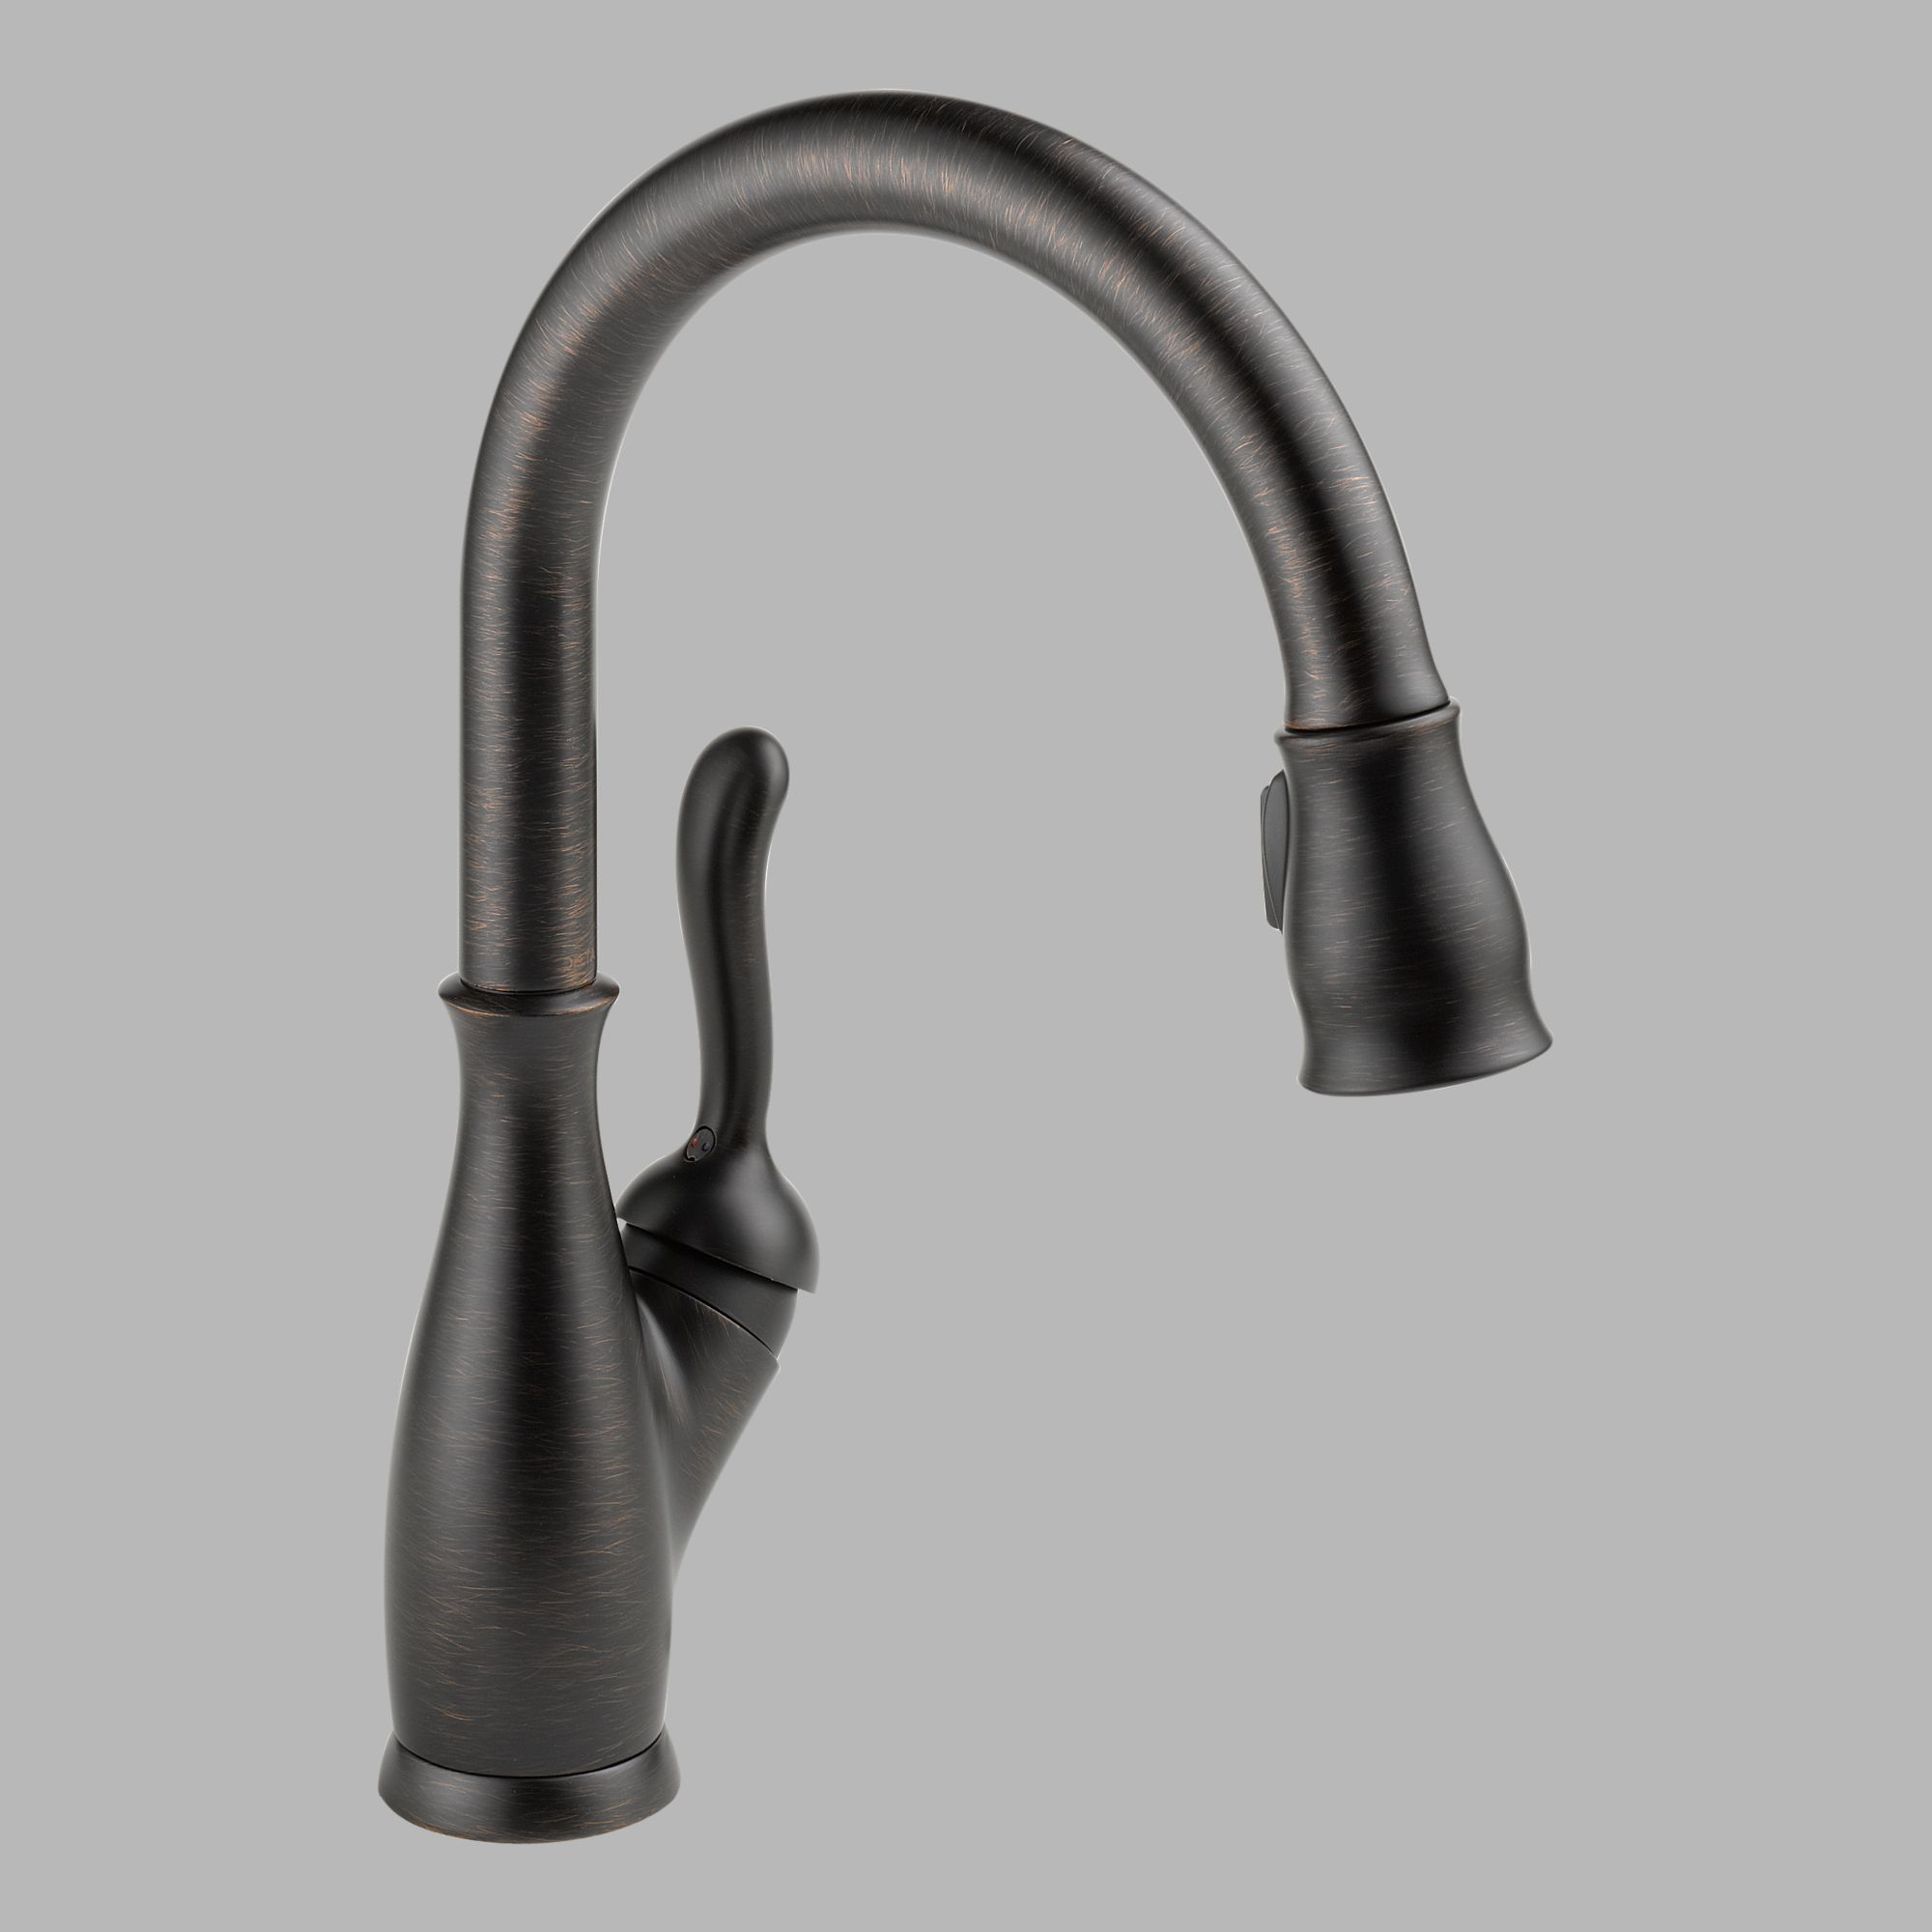 Kitchen Faucet Keeps Getting Loose: Delta 9178-RB-DST Single Handle Pull Down Kitchen Faucet